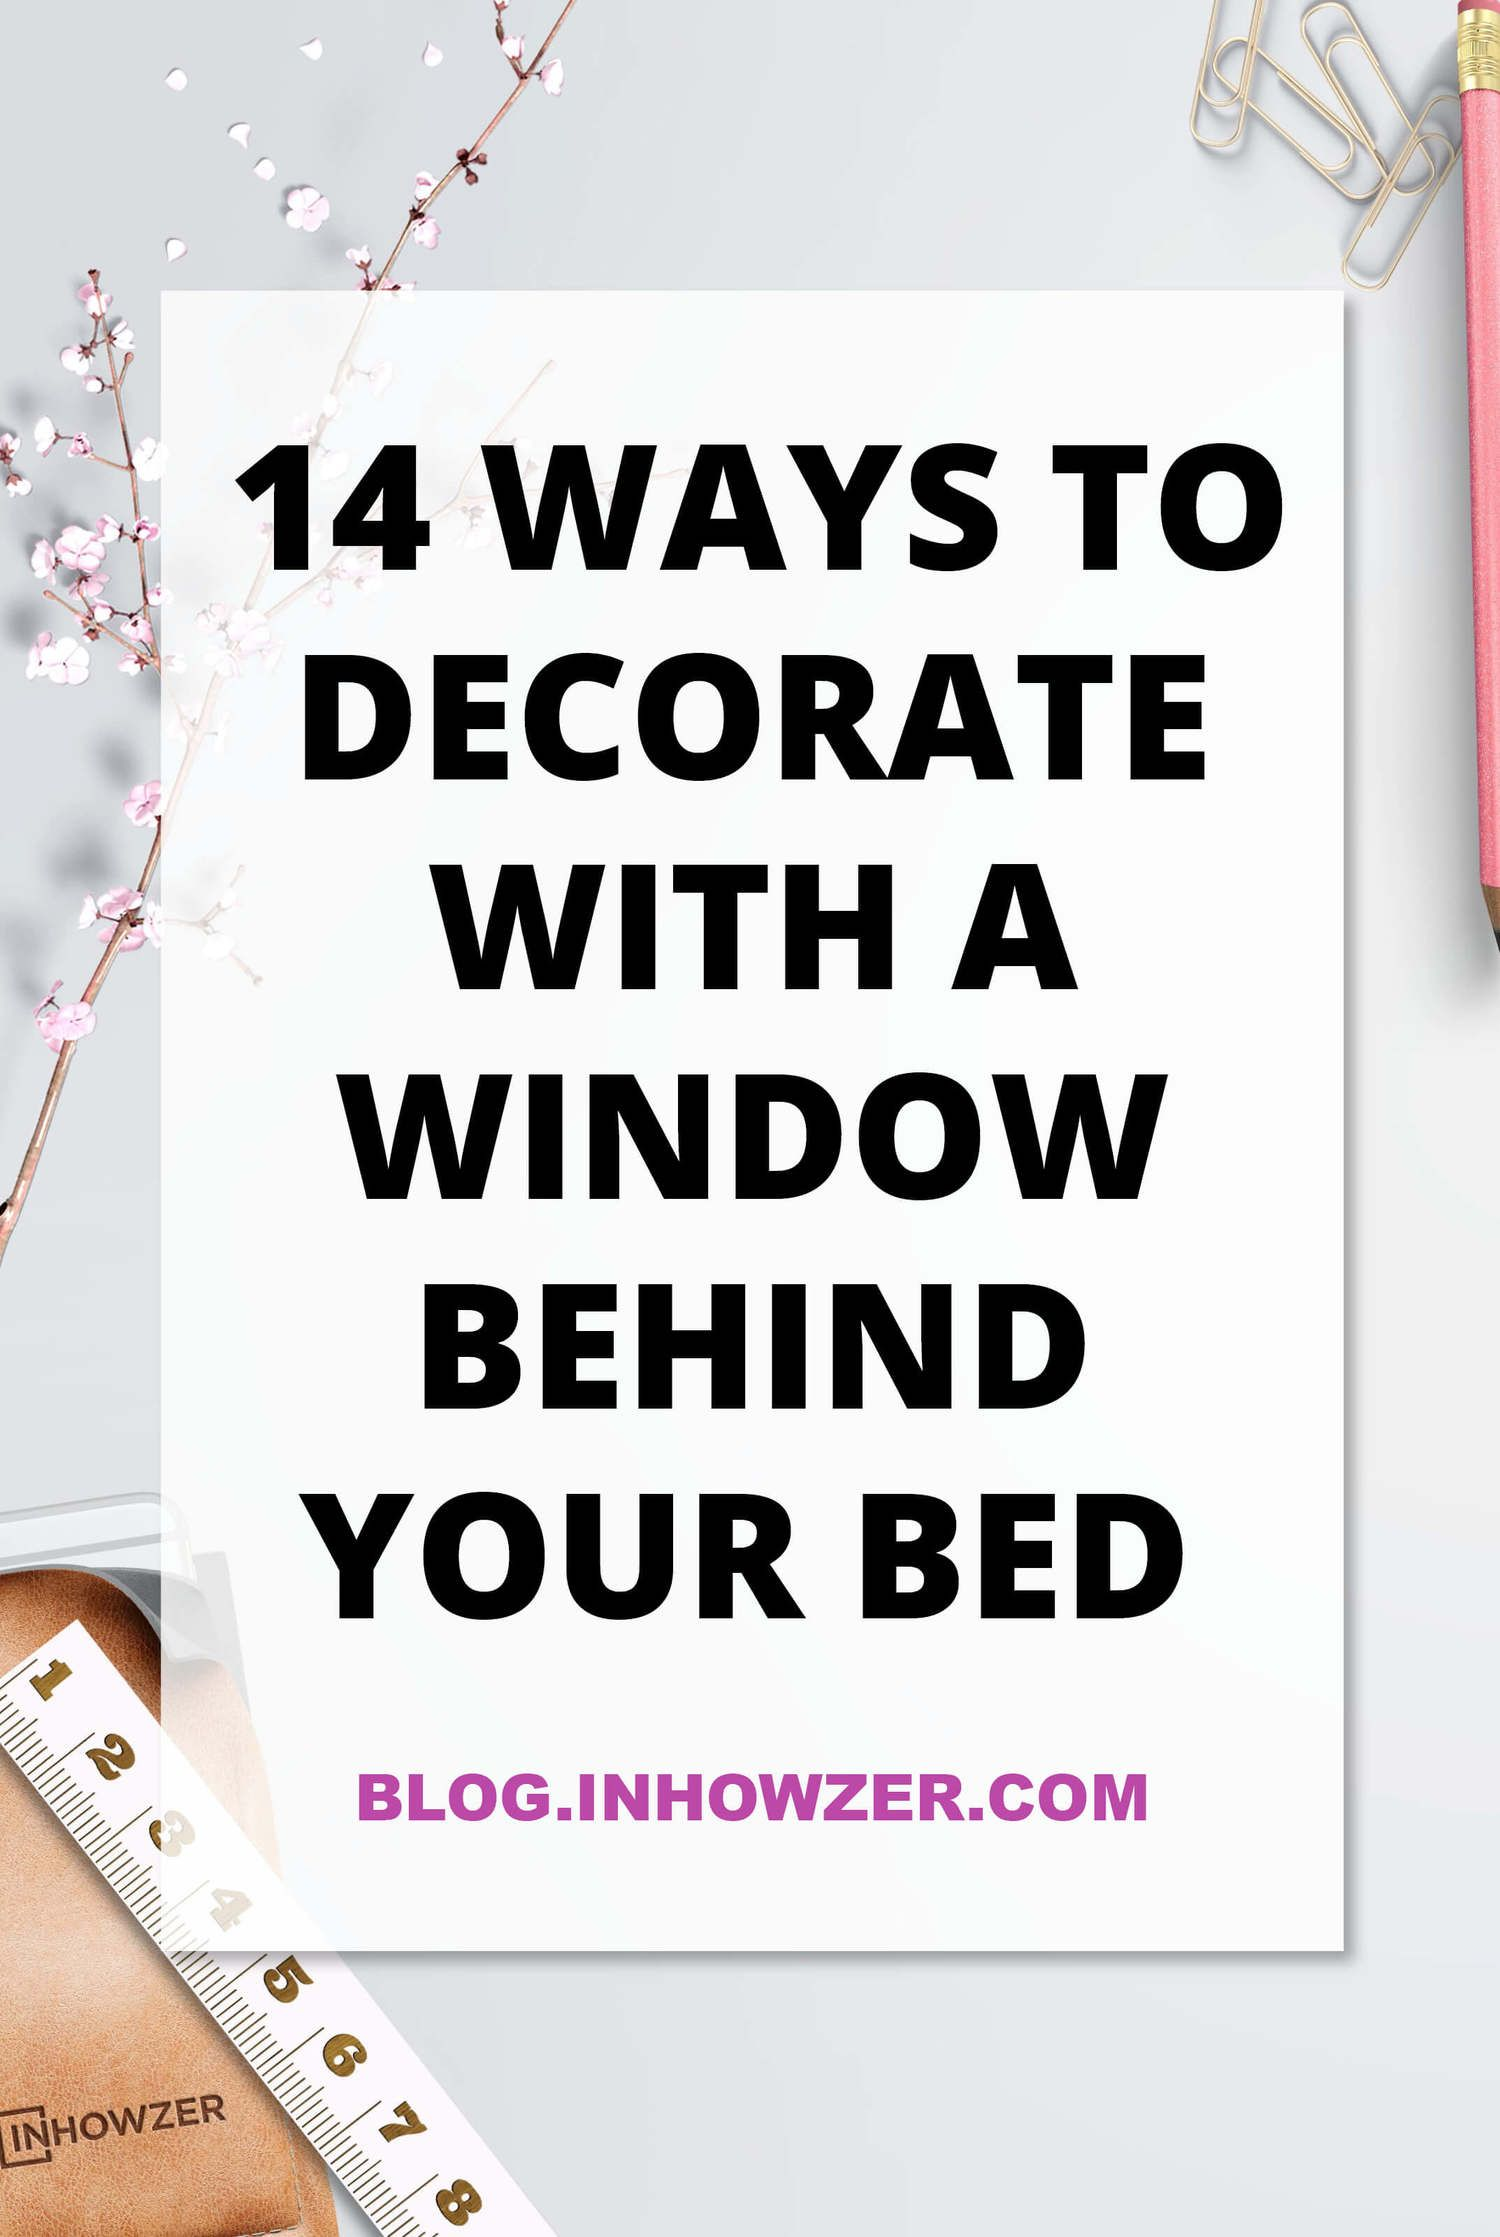 Bedroom ideas window behind bed   ways to decorate with a window behind your bed you can make your